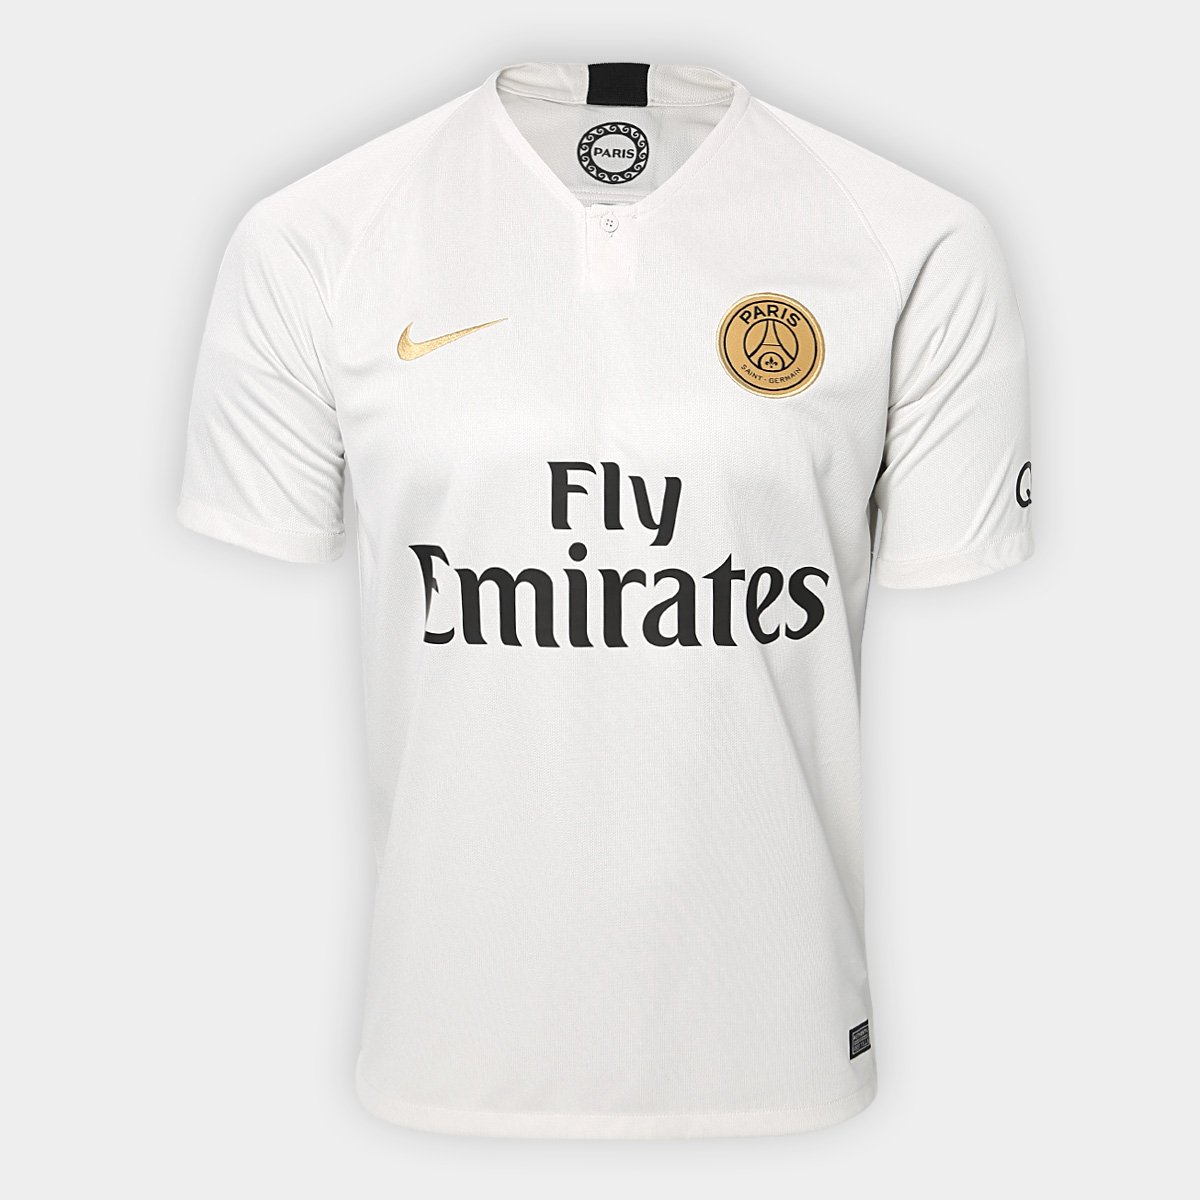 a30aac2ad9 Camisa Paris Saint-Germain Away 2018 s n° - Torcedor Nike Masculina ...